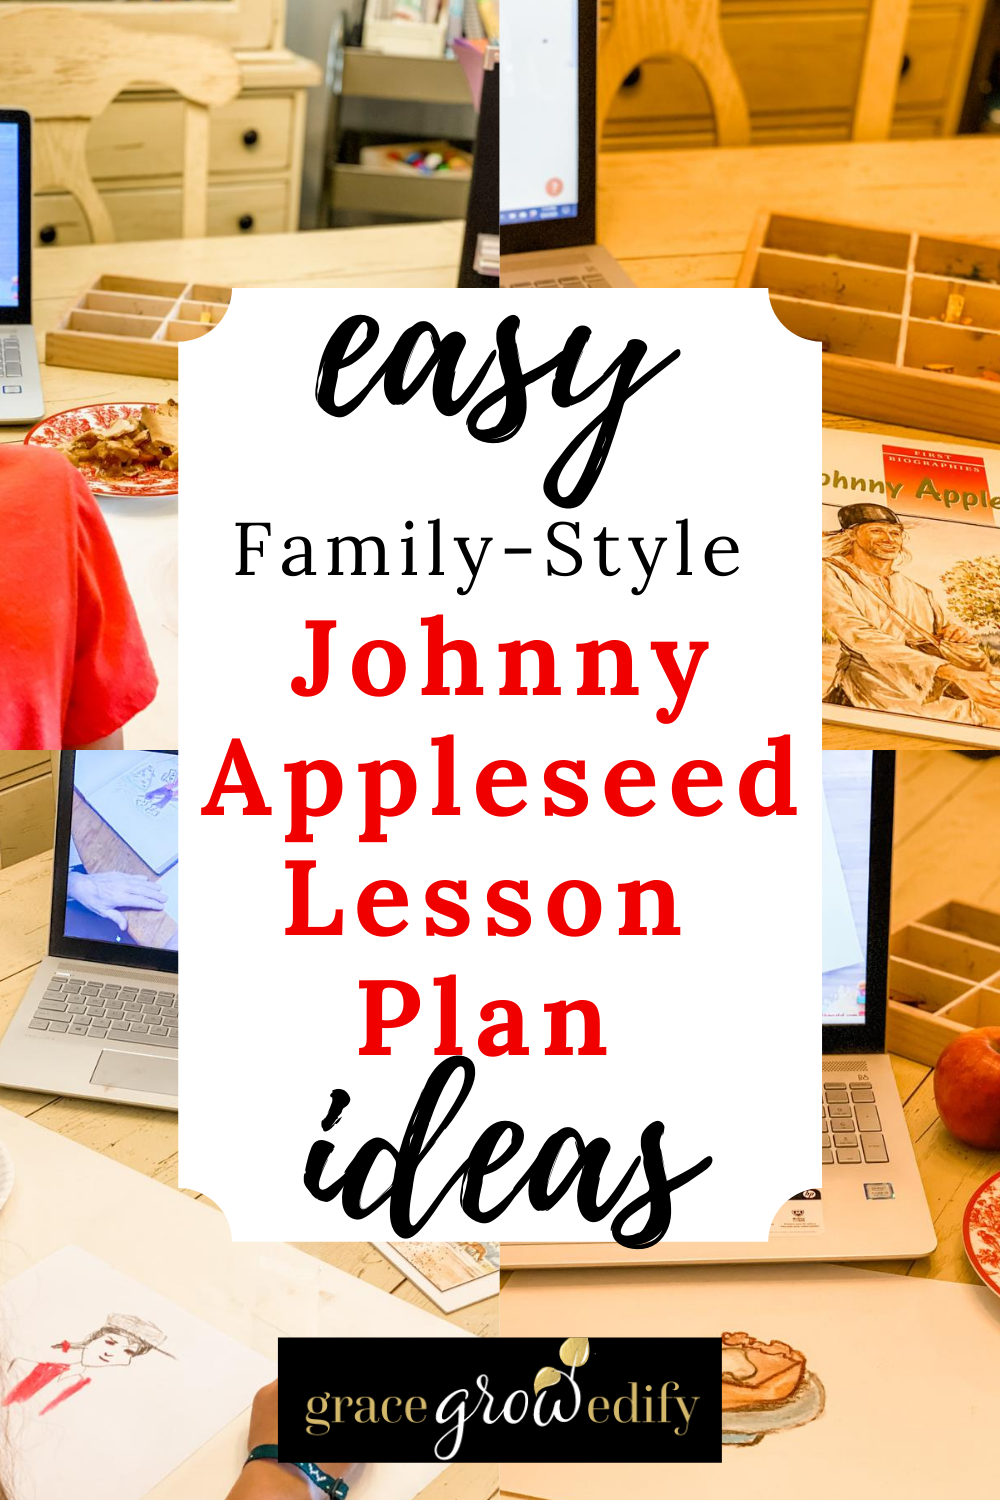 Johnny Appleseed Lesson Plans